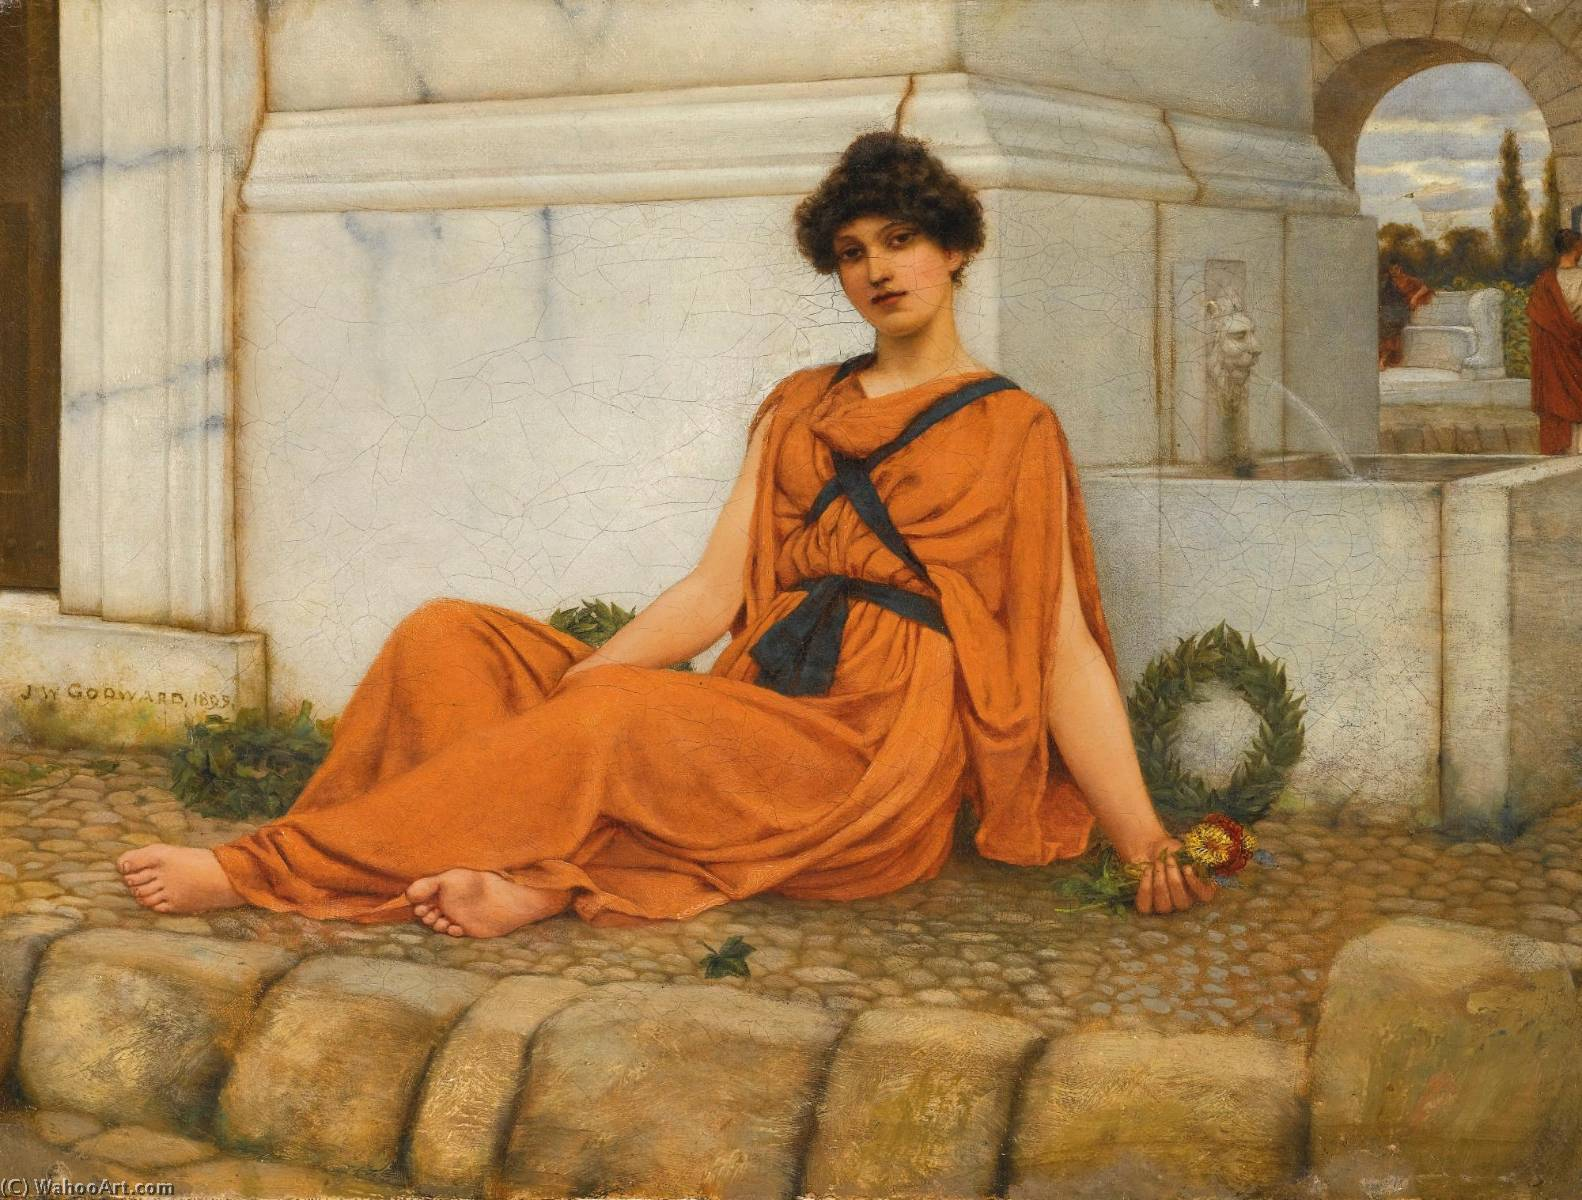 repose, the flower girl by John William Godward (1861-1922) | WahooArt.com